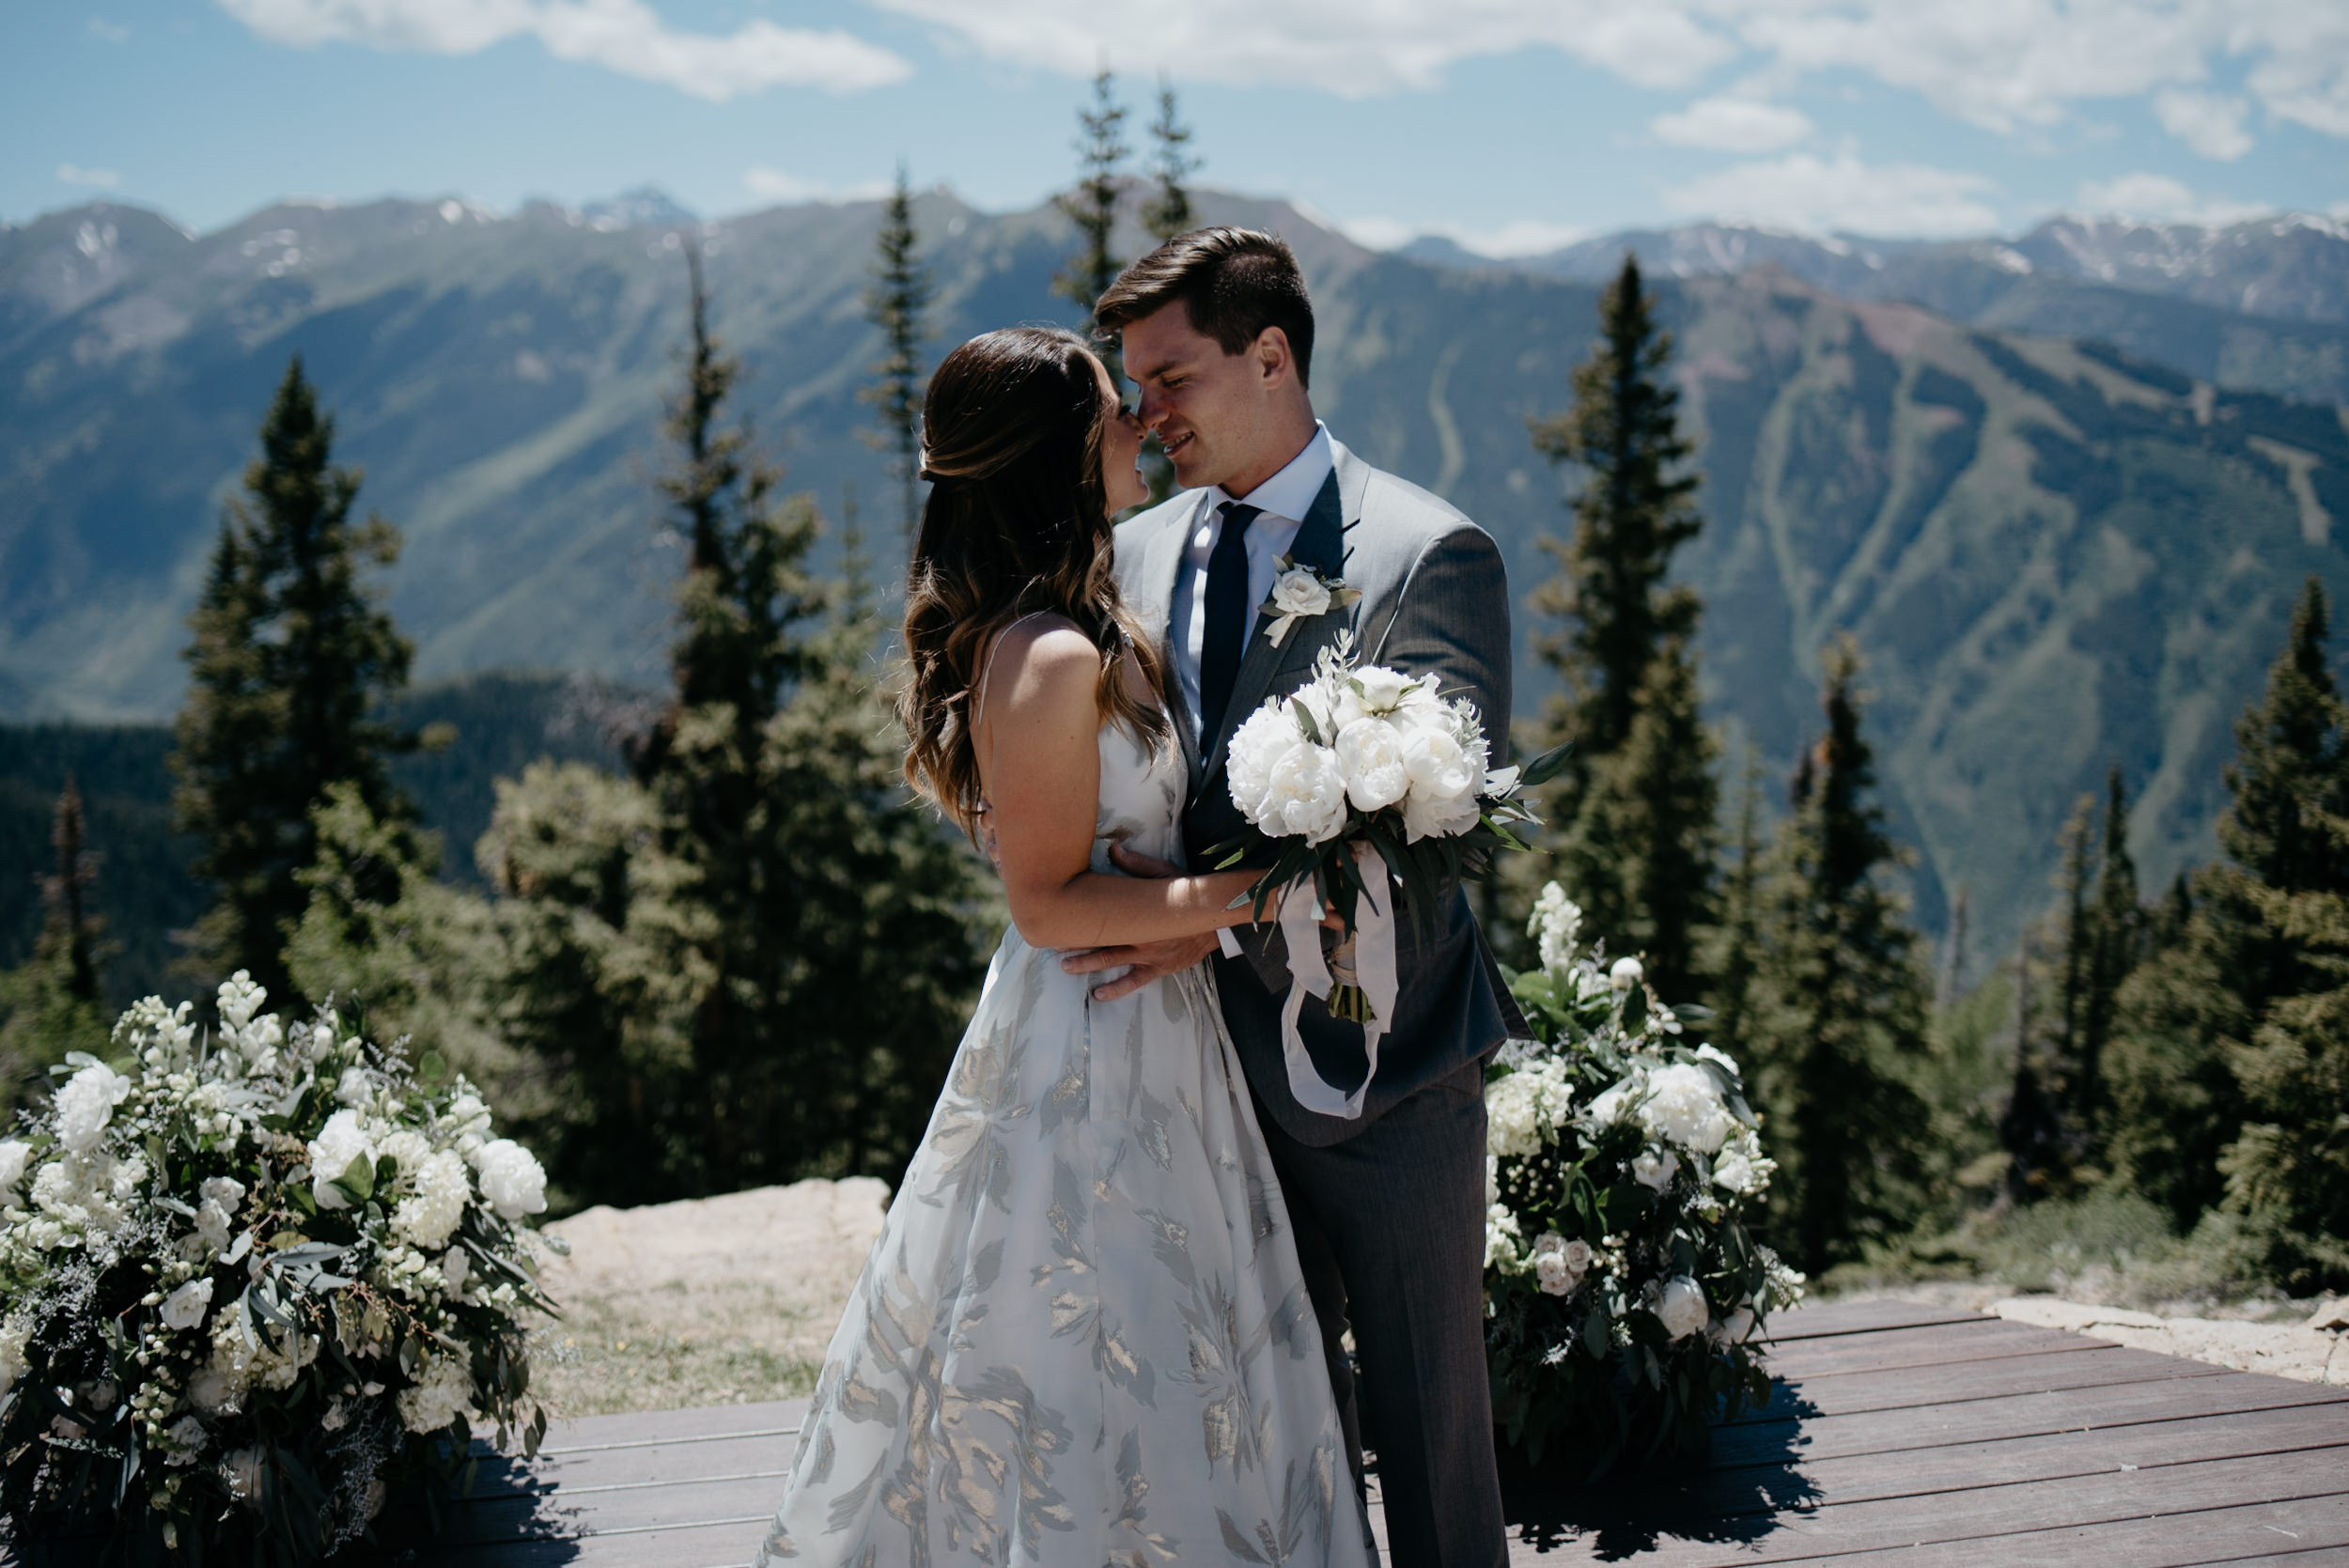 Aspen, Colorado elopement and wedding photographer. The Little Nell wedding.